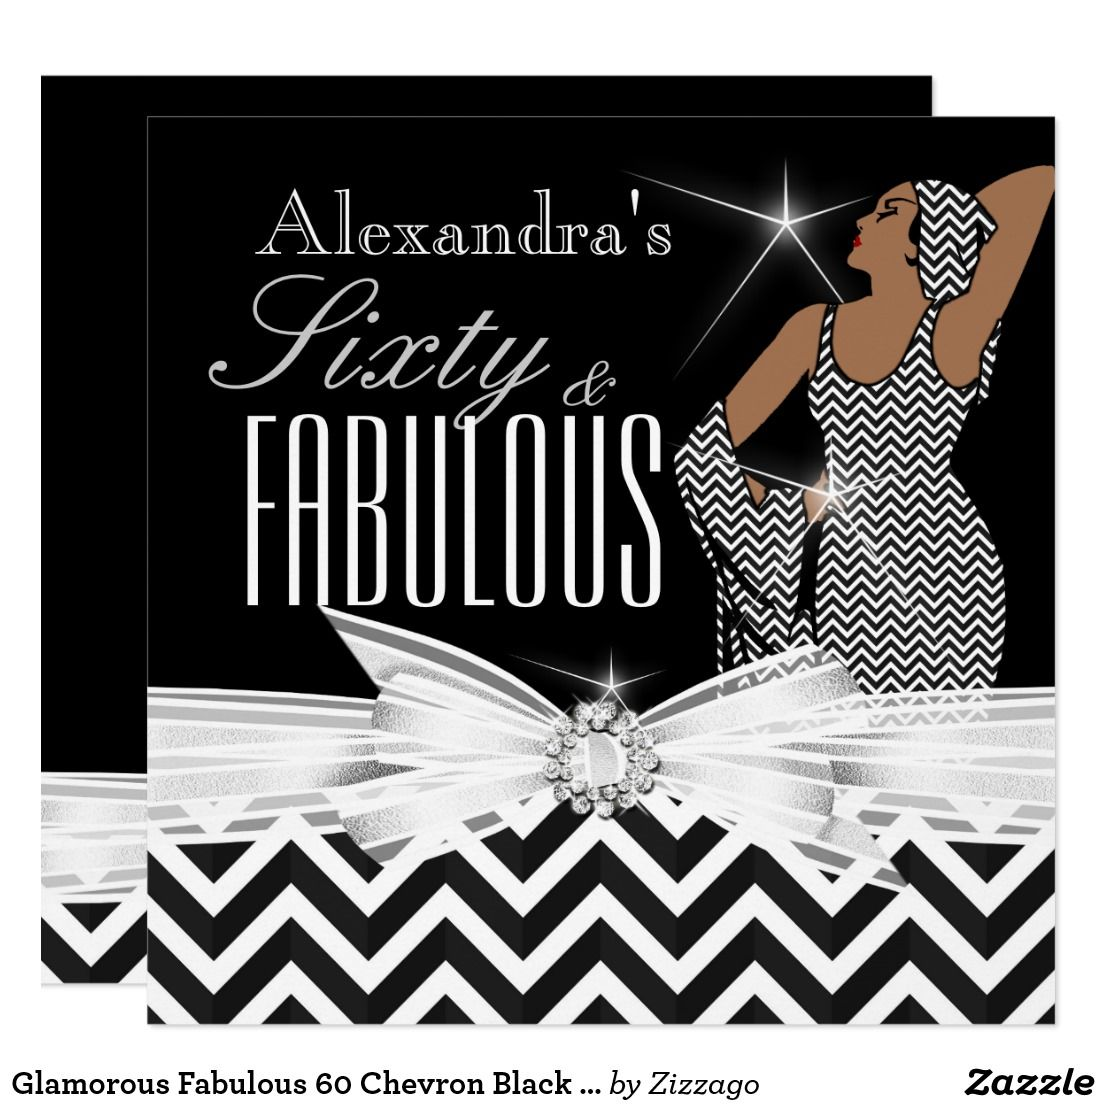 Glamorous Fabulous 60 Chevron Black White Birthday Card Woman And Pattern Elegant Vintage Retro Stylish 60th